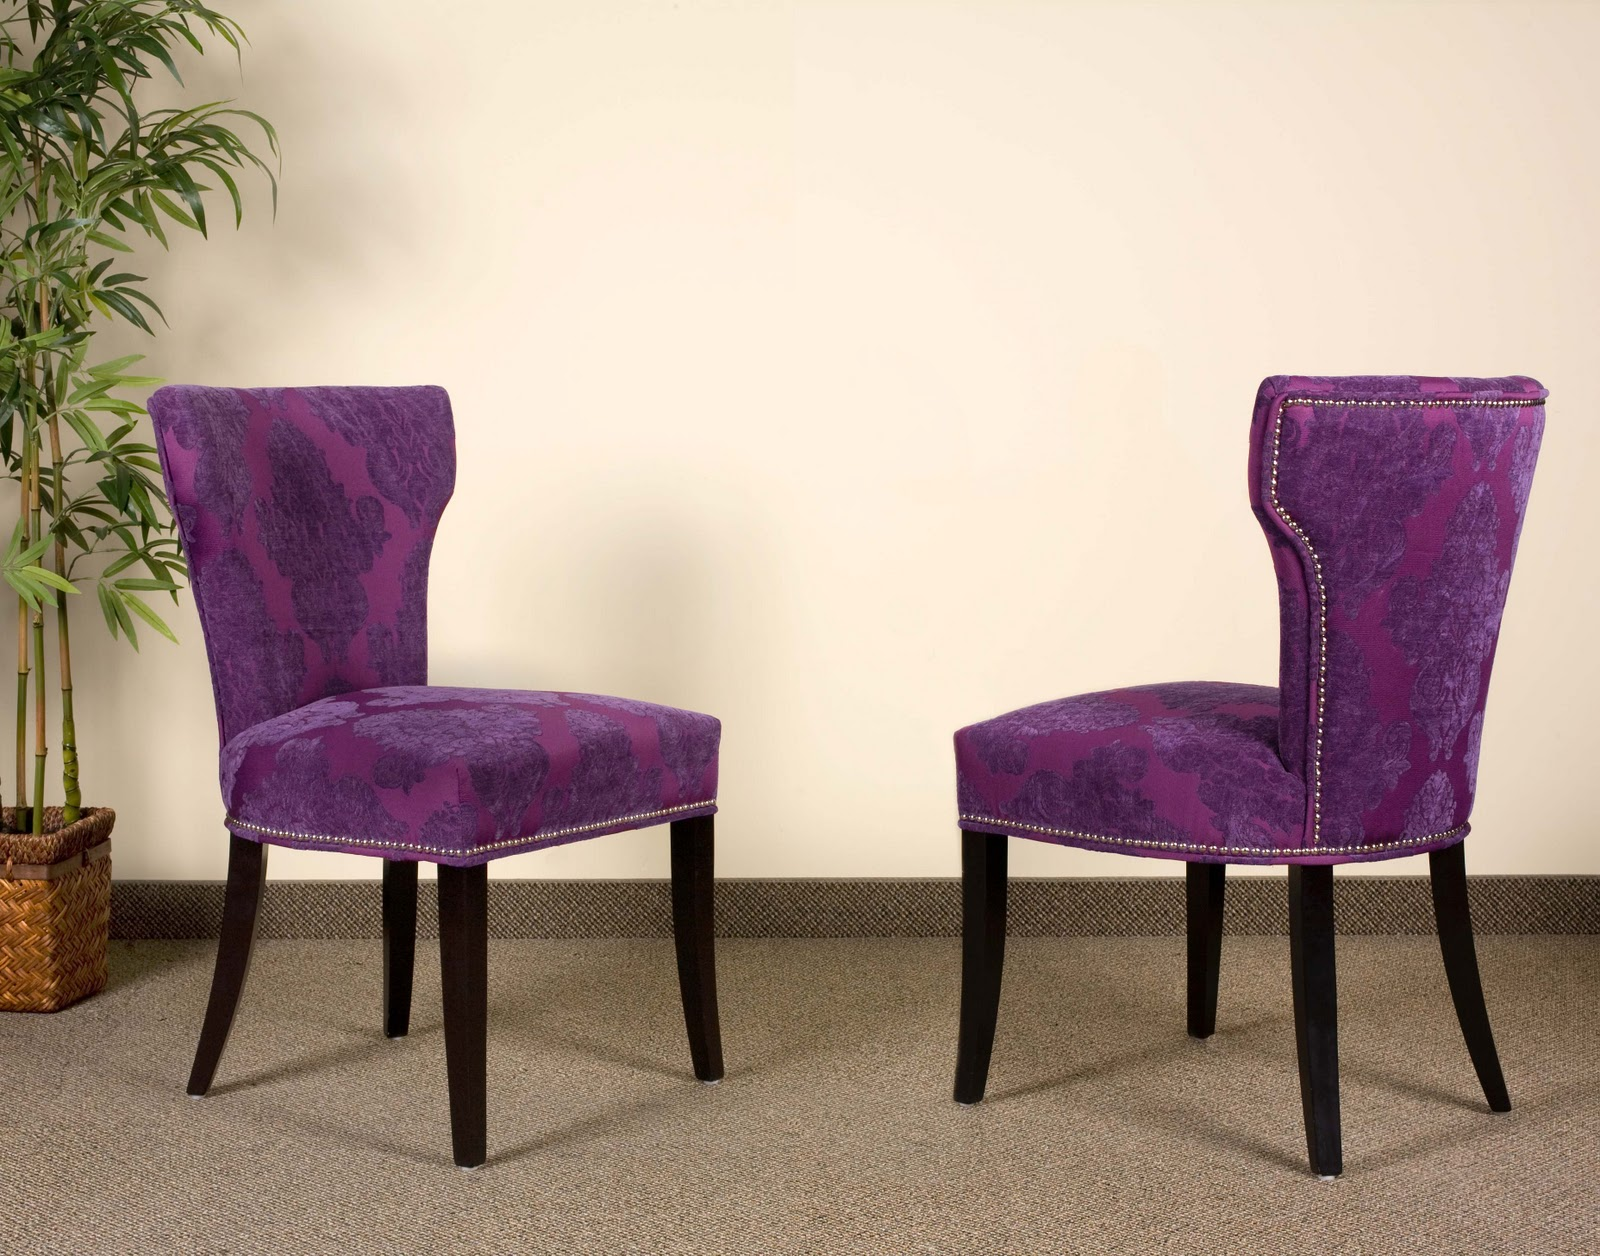 Purple Dining Chair Covers Wheelchair Volleyball Design Sense